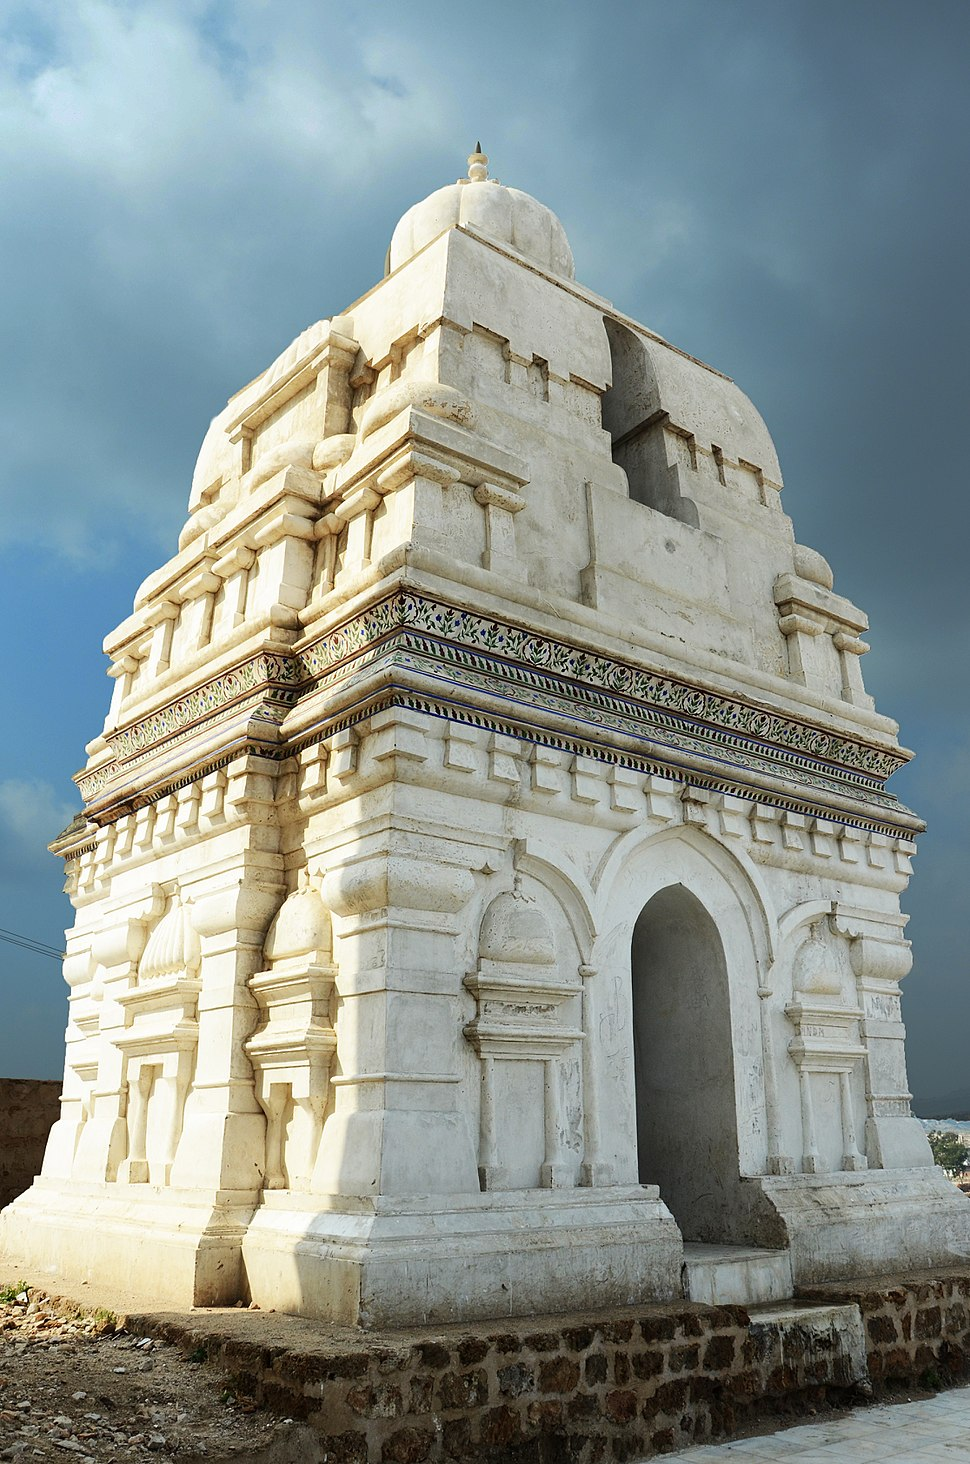 Hindu Temple near Budhist Stupa at Katas Raj Temple